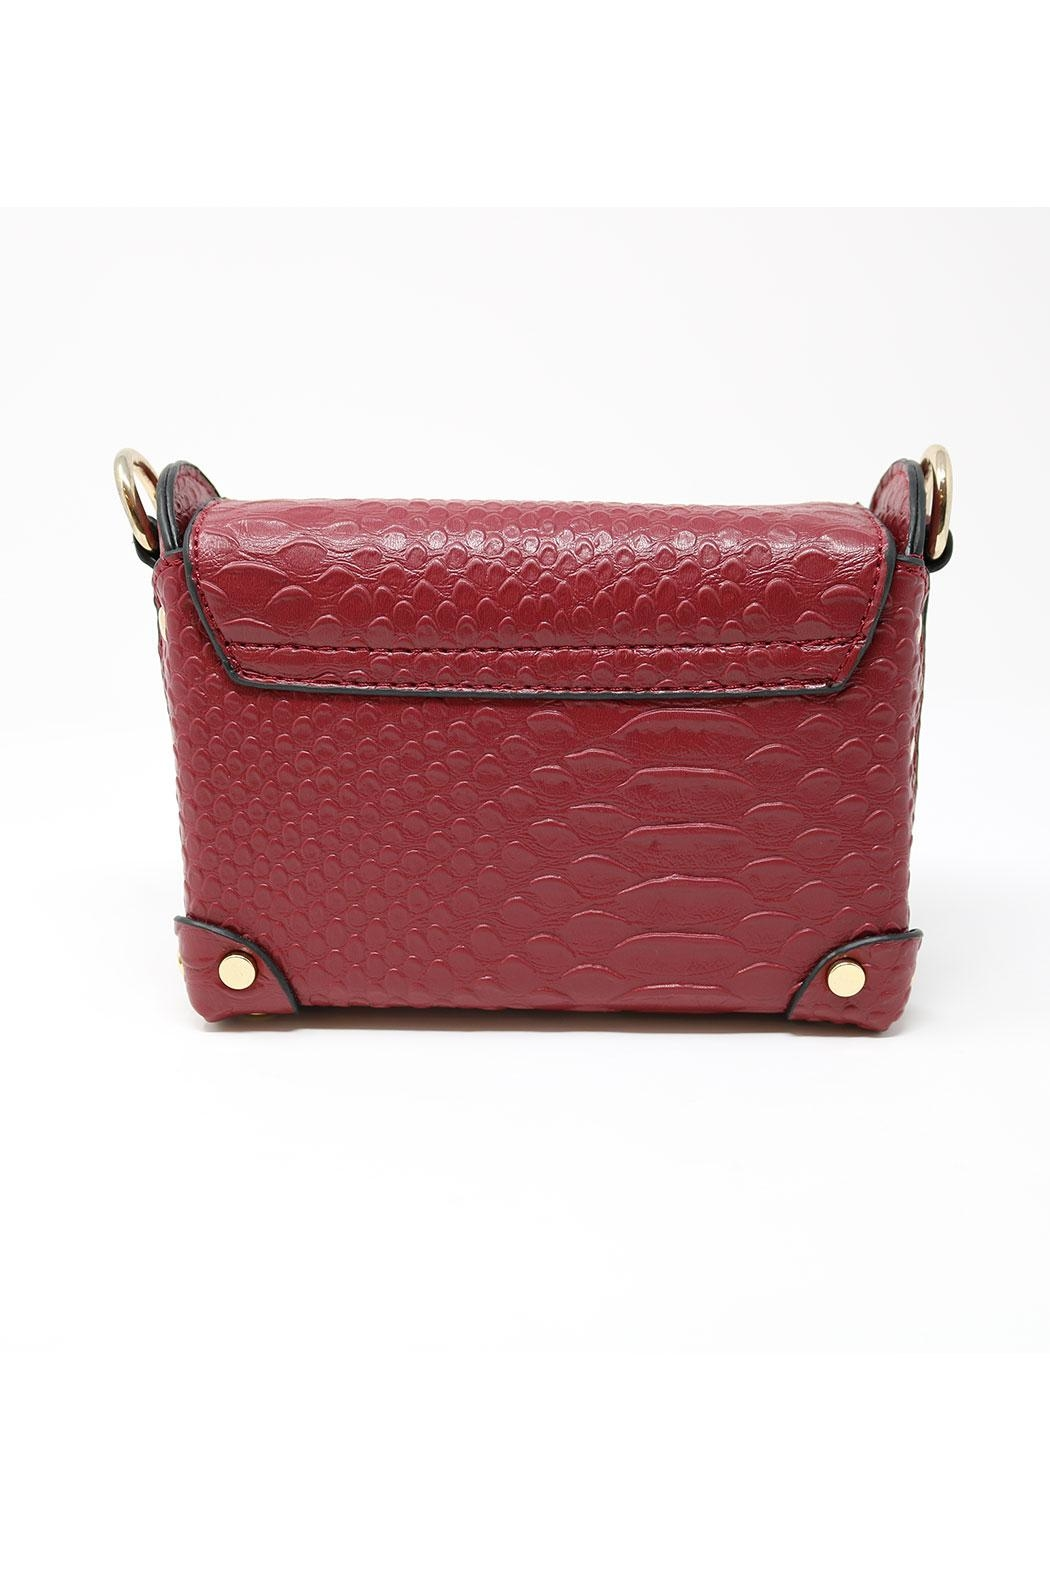 Nadya's Closet Croc Accent Mini-Bag - Side Cropped Image